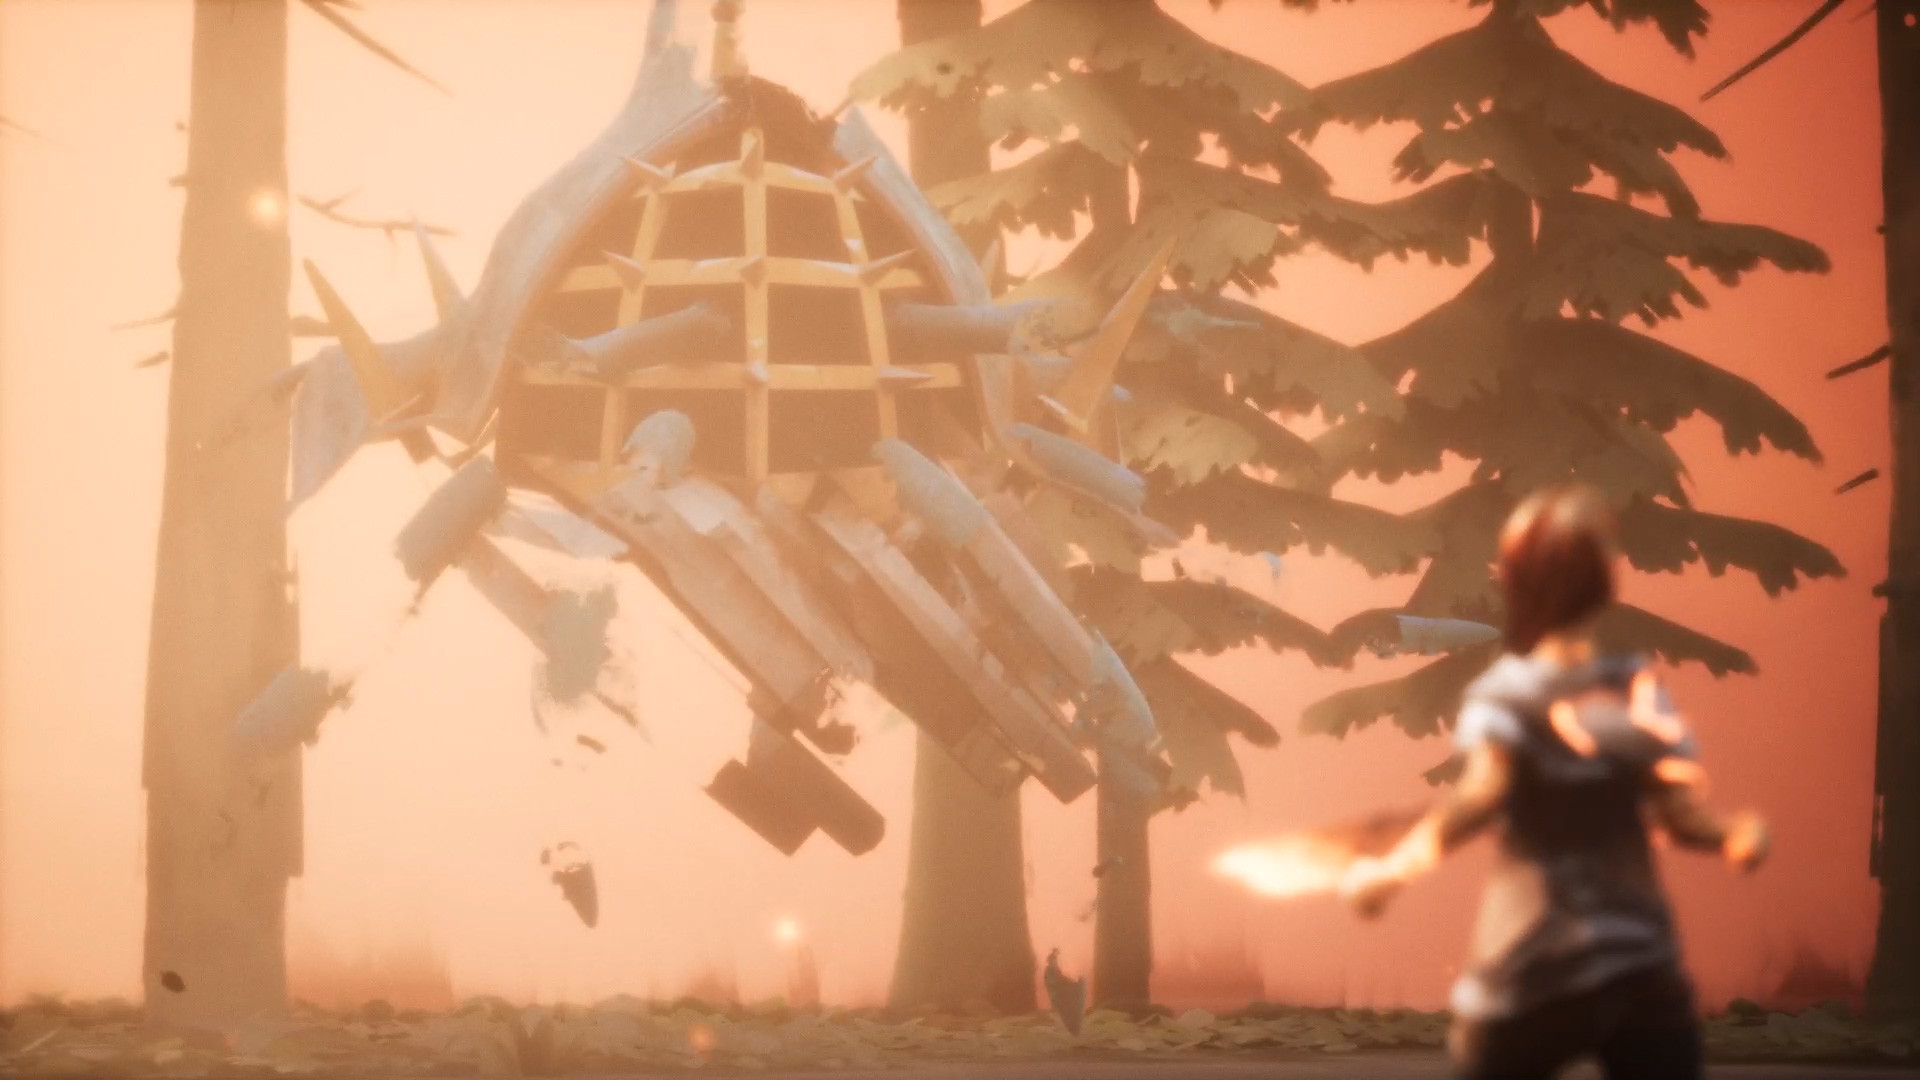 Dreamscaper Is An Upcoming ARPG That Will Challenge Players To Battle Their Nightmares, Entering Steam Early Access